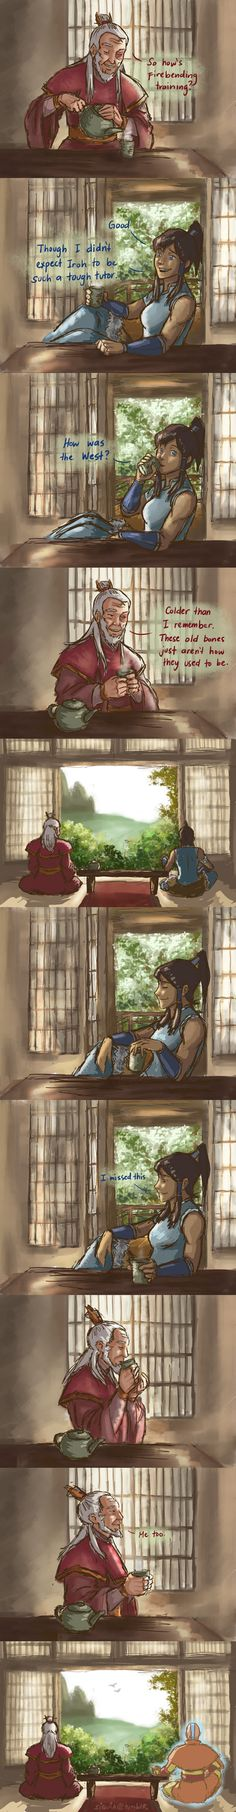 "Sometimes I forget that the Avatar would ""feel"" familiar to people who knew a former Avatar in their lifetime - this is a brilliant little piece that reminds me of that in a poignant way."